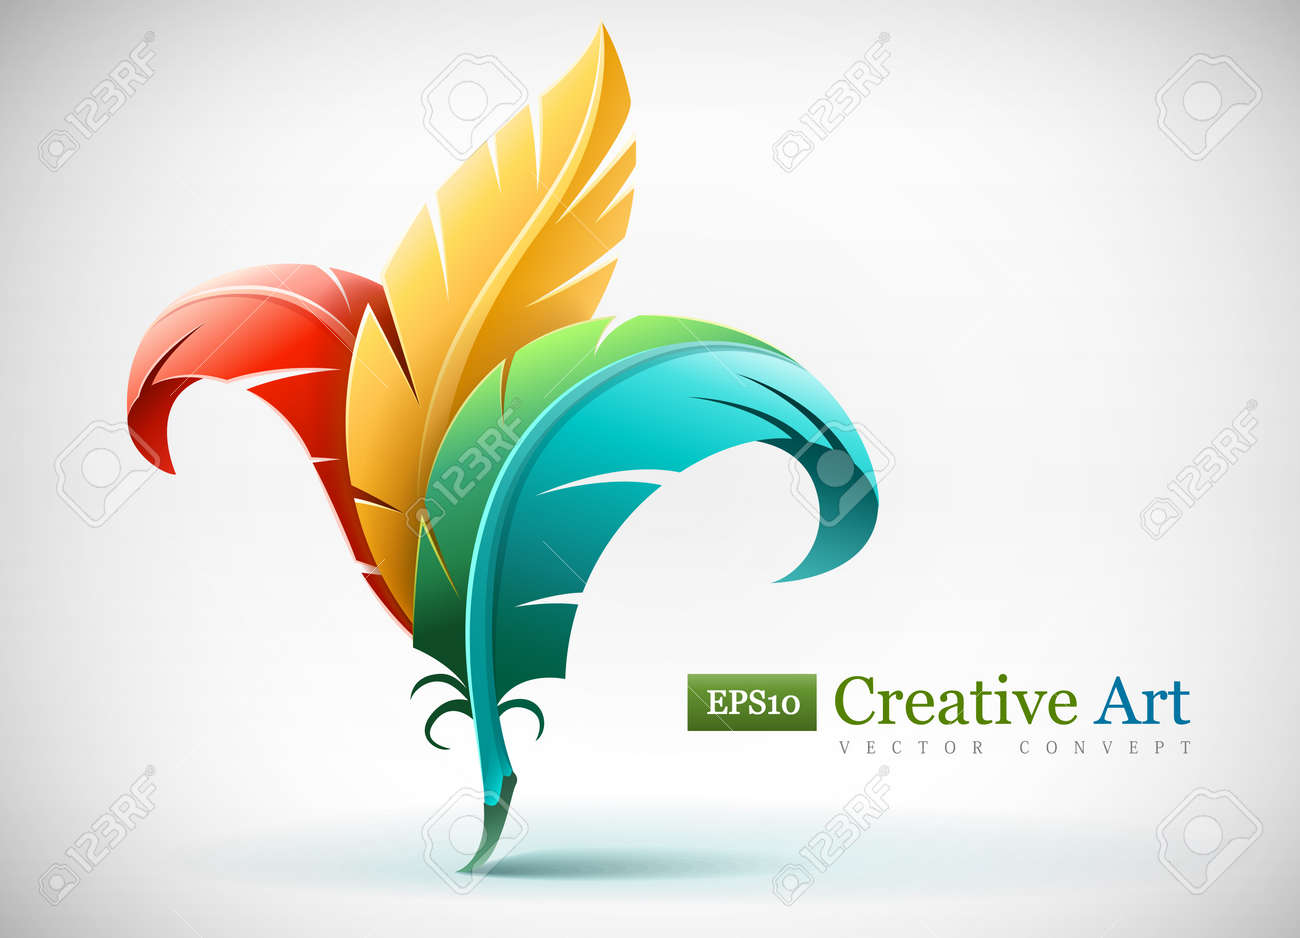 creative art concept with color red yellow and blue feathers. Vector illustration EPS10. Transparent objects used for shadows and lights drawing. Stock Vector - 12934152